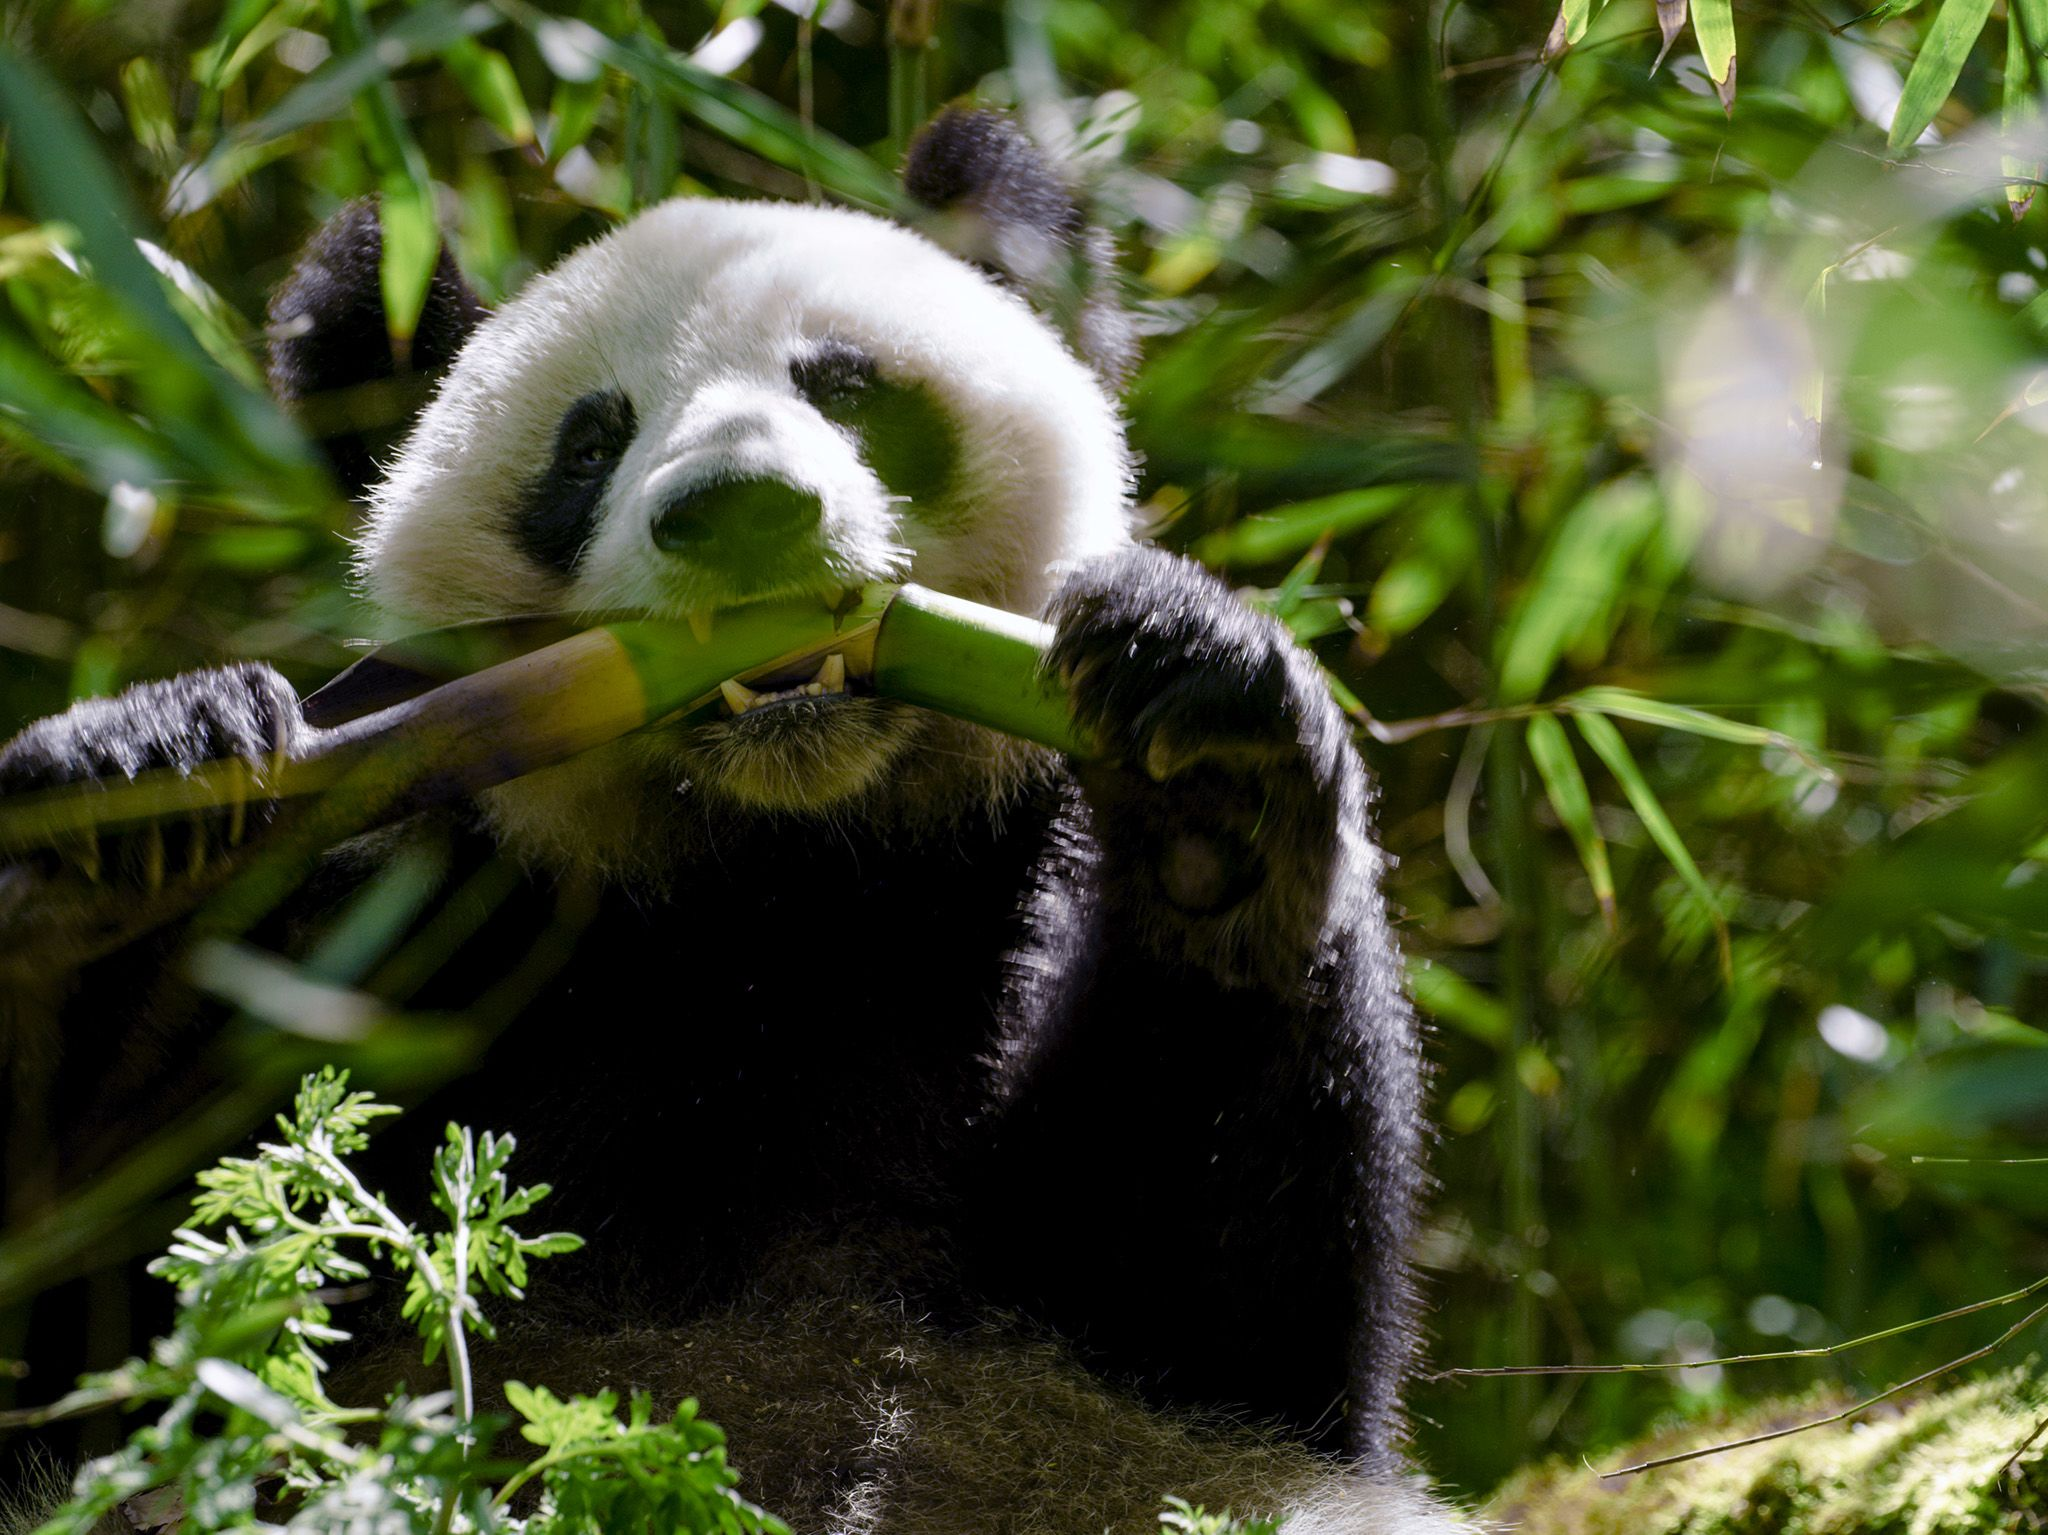 Wolong, Sichuan, China: Pandas playing in the bamboo forest. This image is from The Hidden... [Photo of the day - October 2019]